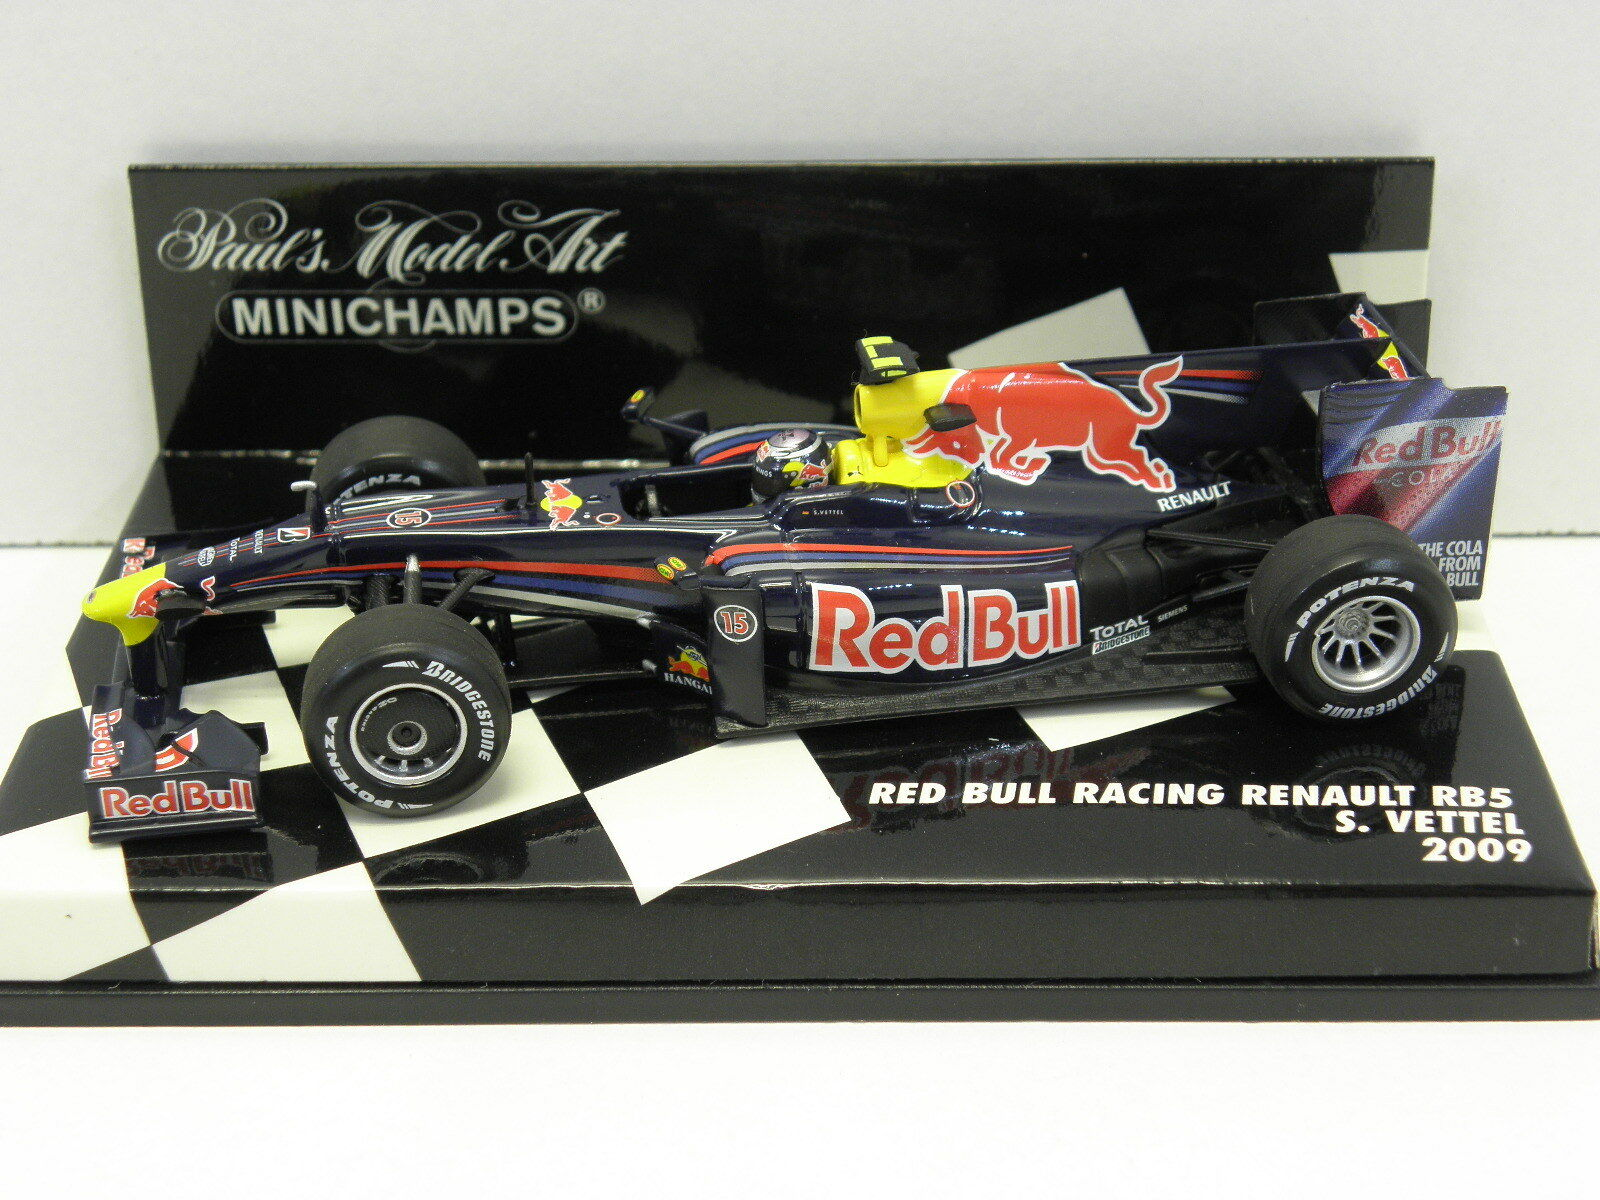 Minichamps 400090015 stand modèle rouge Bull racing renault ma grosse 2009 M. 1 43